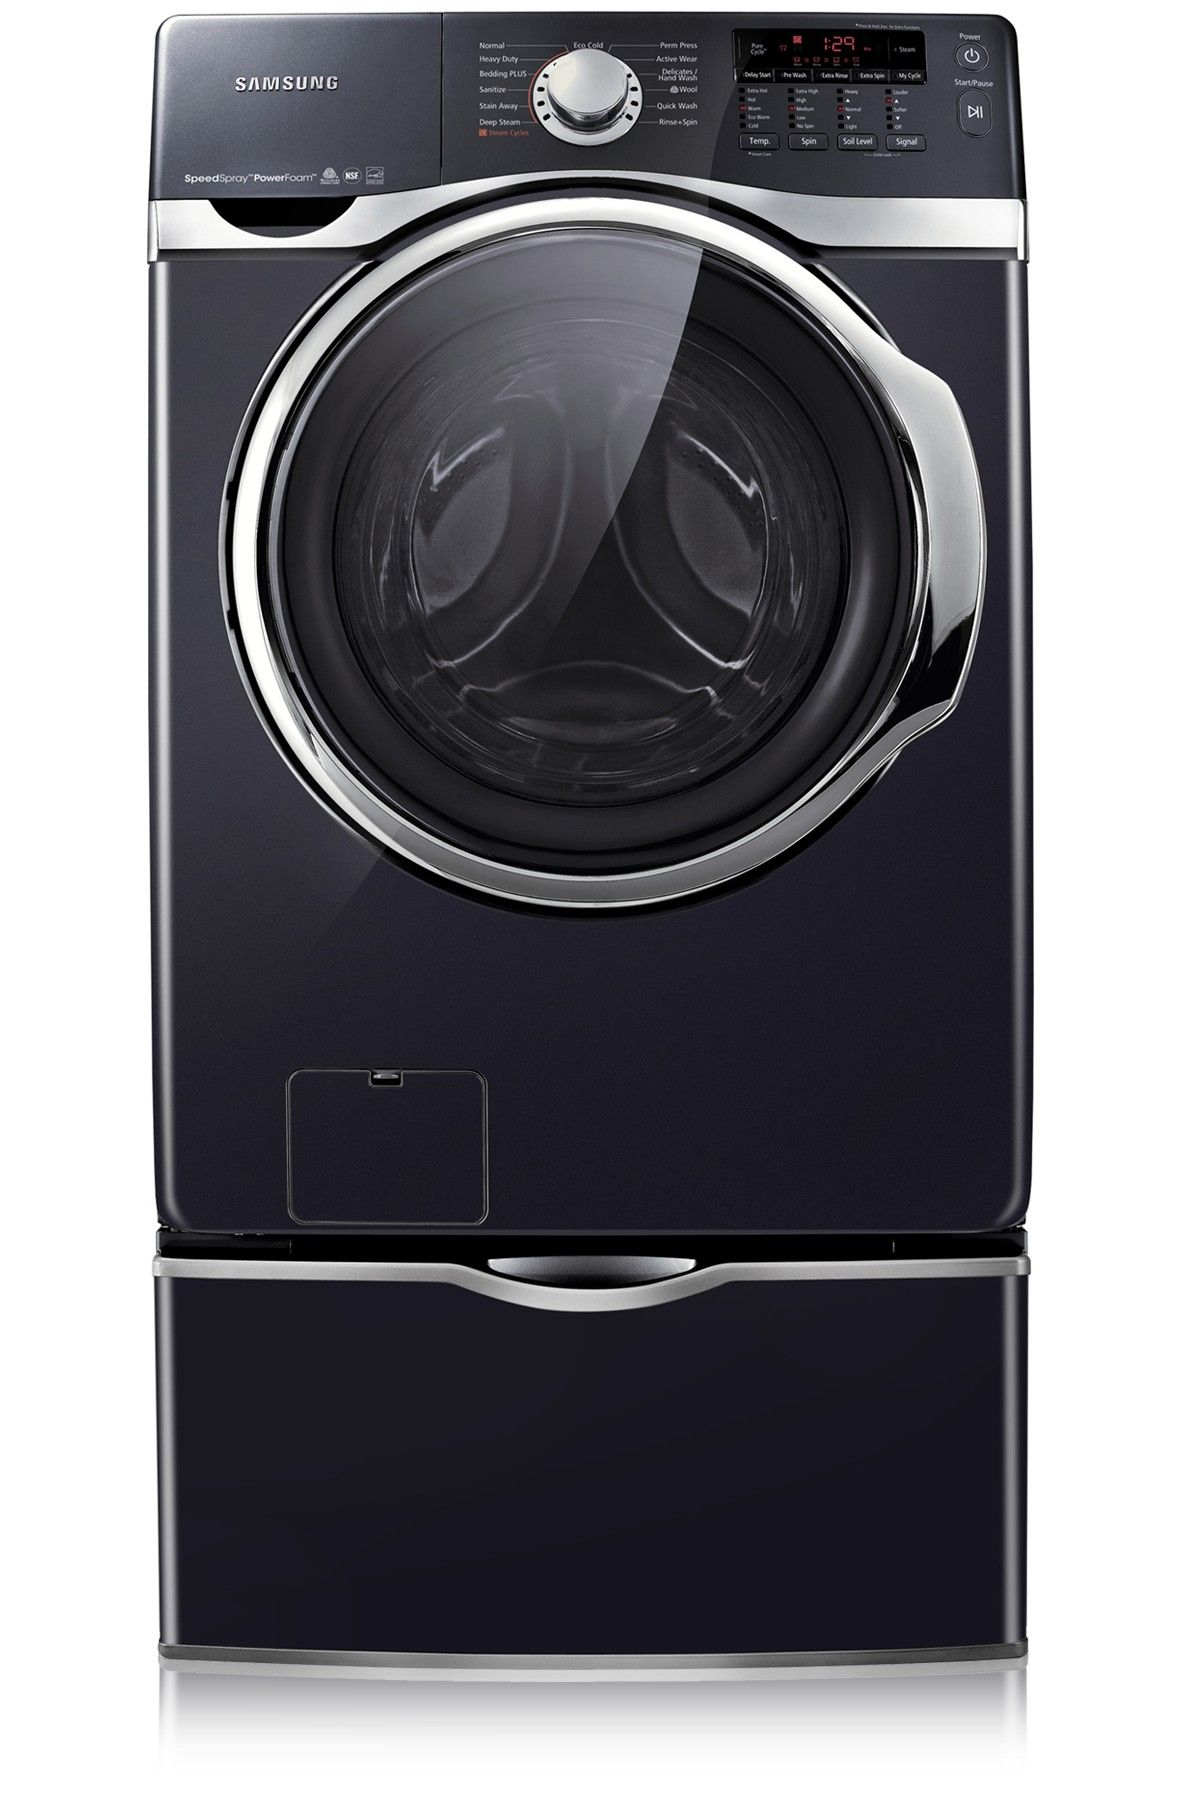 Samsung Wf397utpagr Large Capacity Front Load Steam Washer 4 6 Cu Ft Internal Heater Pure Cycle Technology Vrt Led Display Washers From